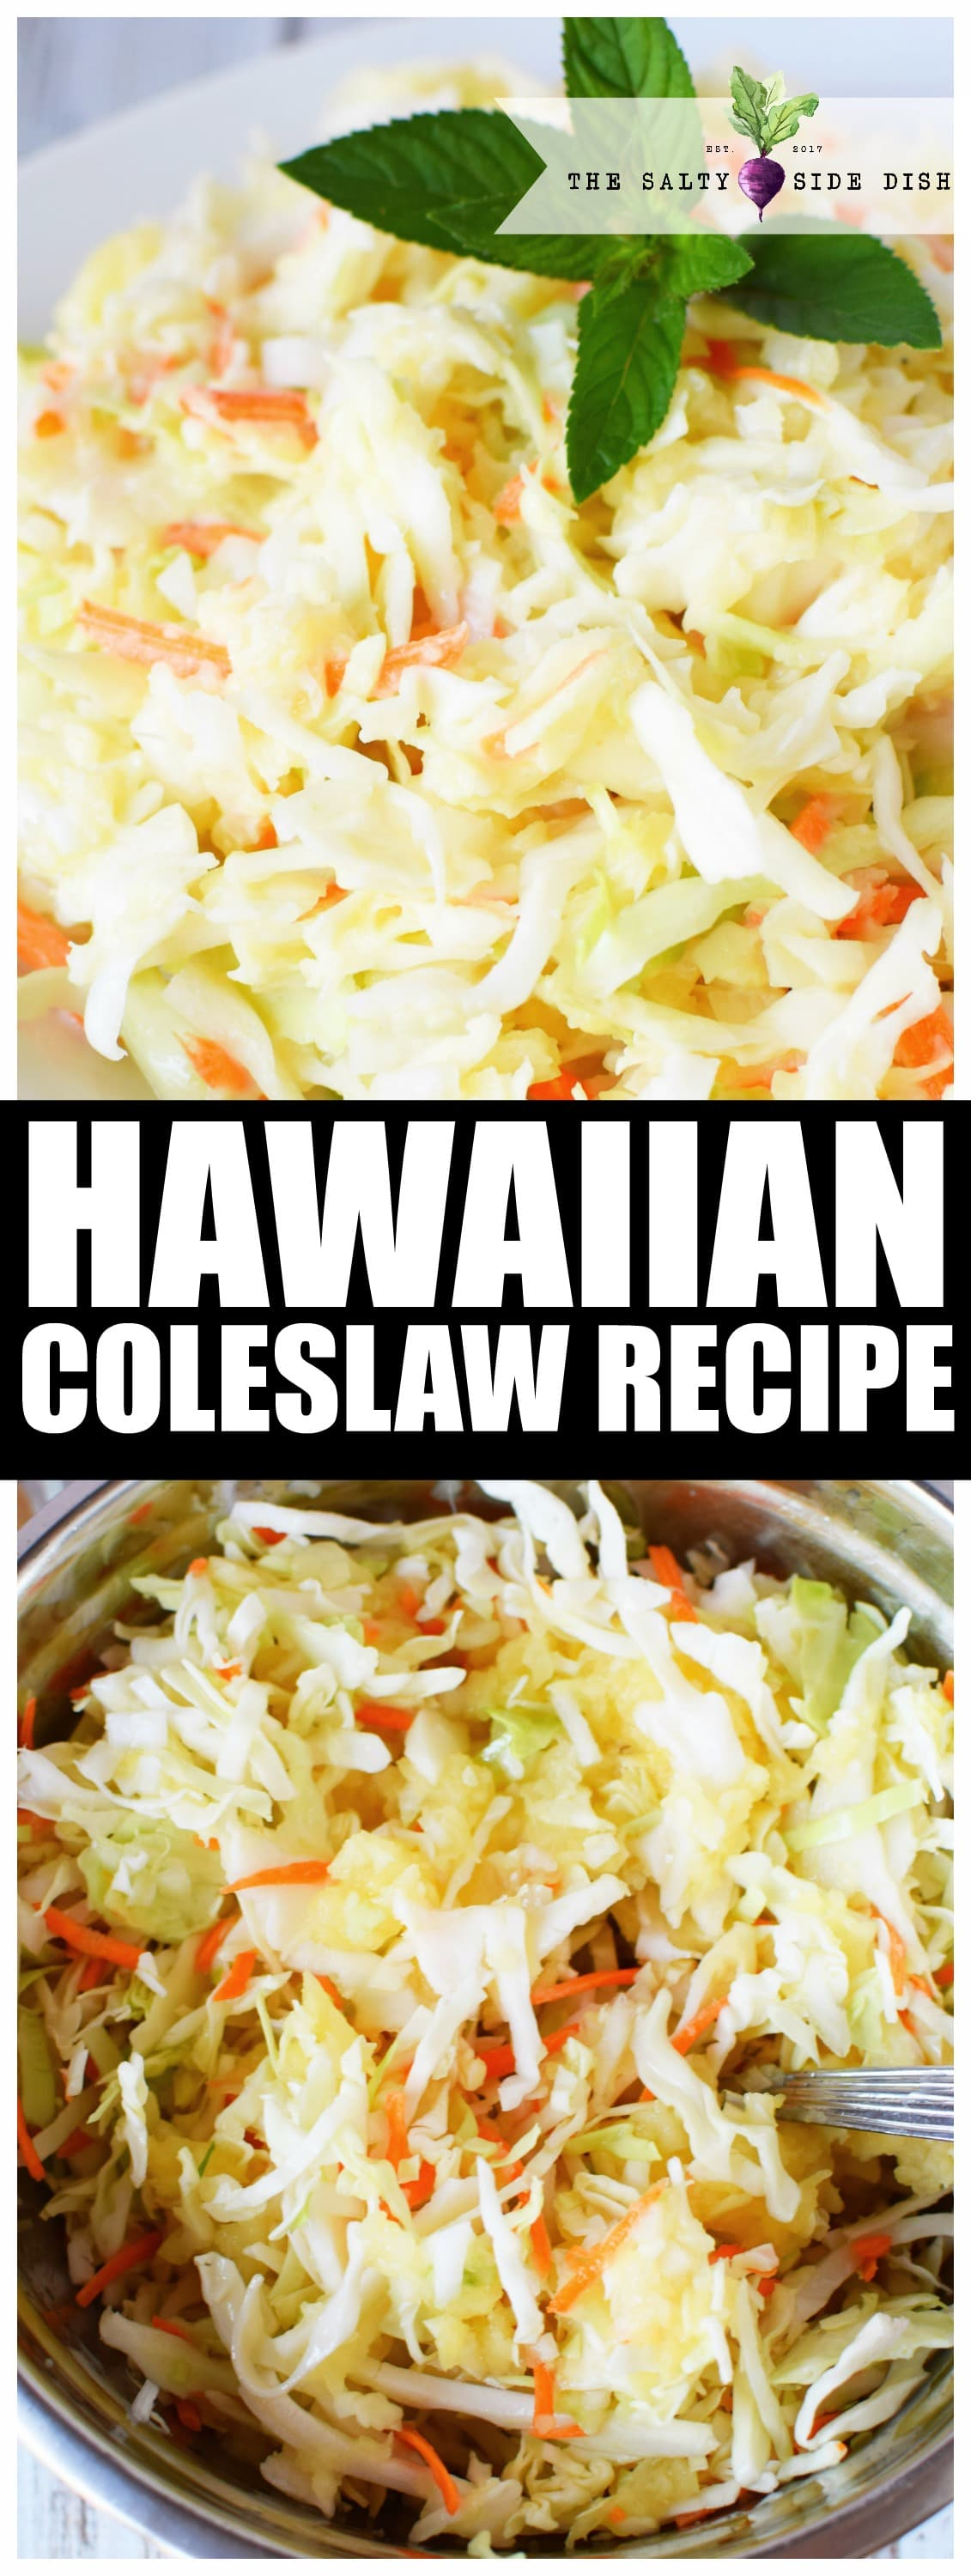 Hawaiian Coleslaw Recipe | Authentic and Sweet Coleslaw with Pineapple and Brown Sugar #sidedish #Hawaiian #sweet #recipe #sidedish #BBQ #party